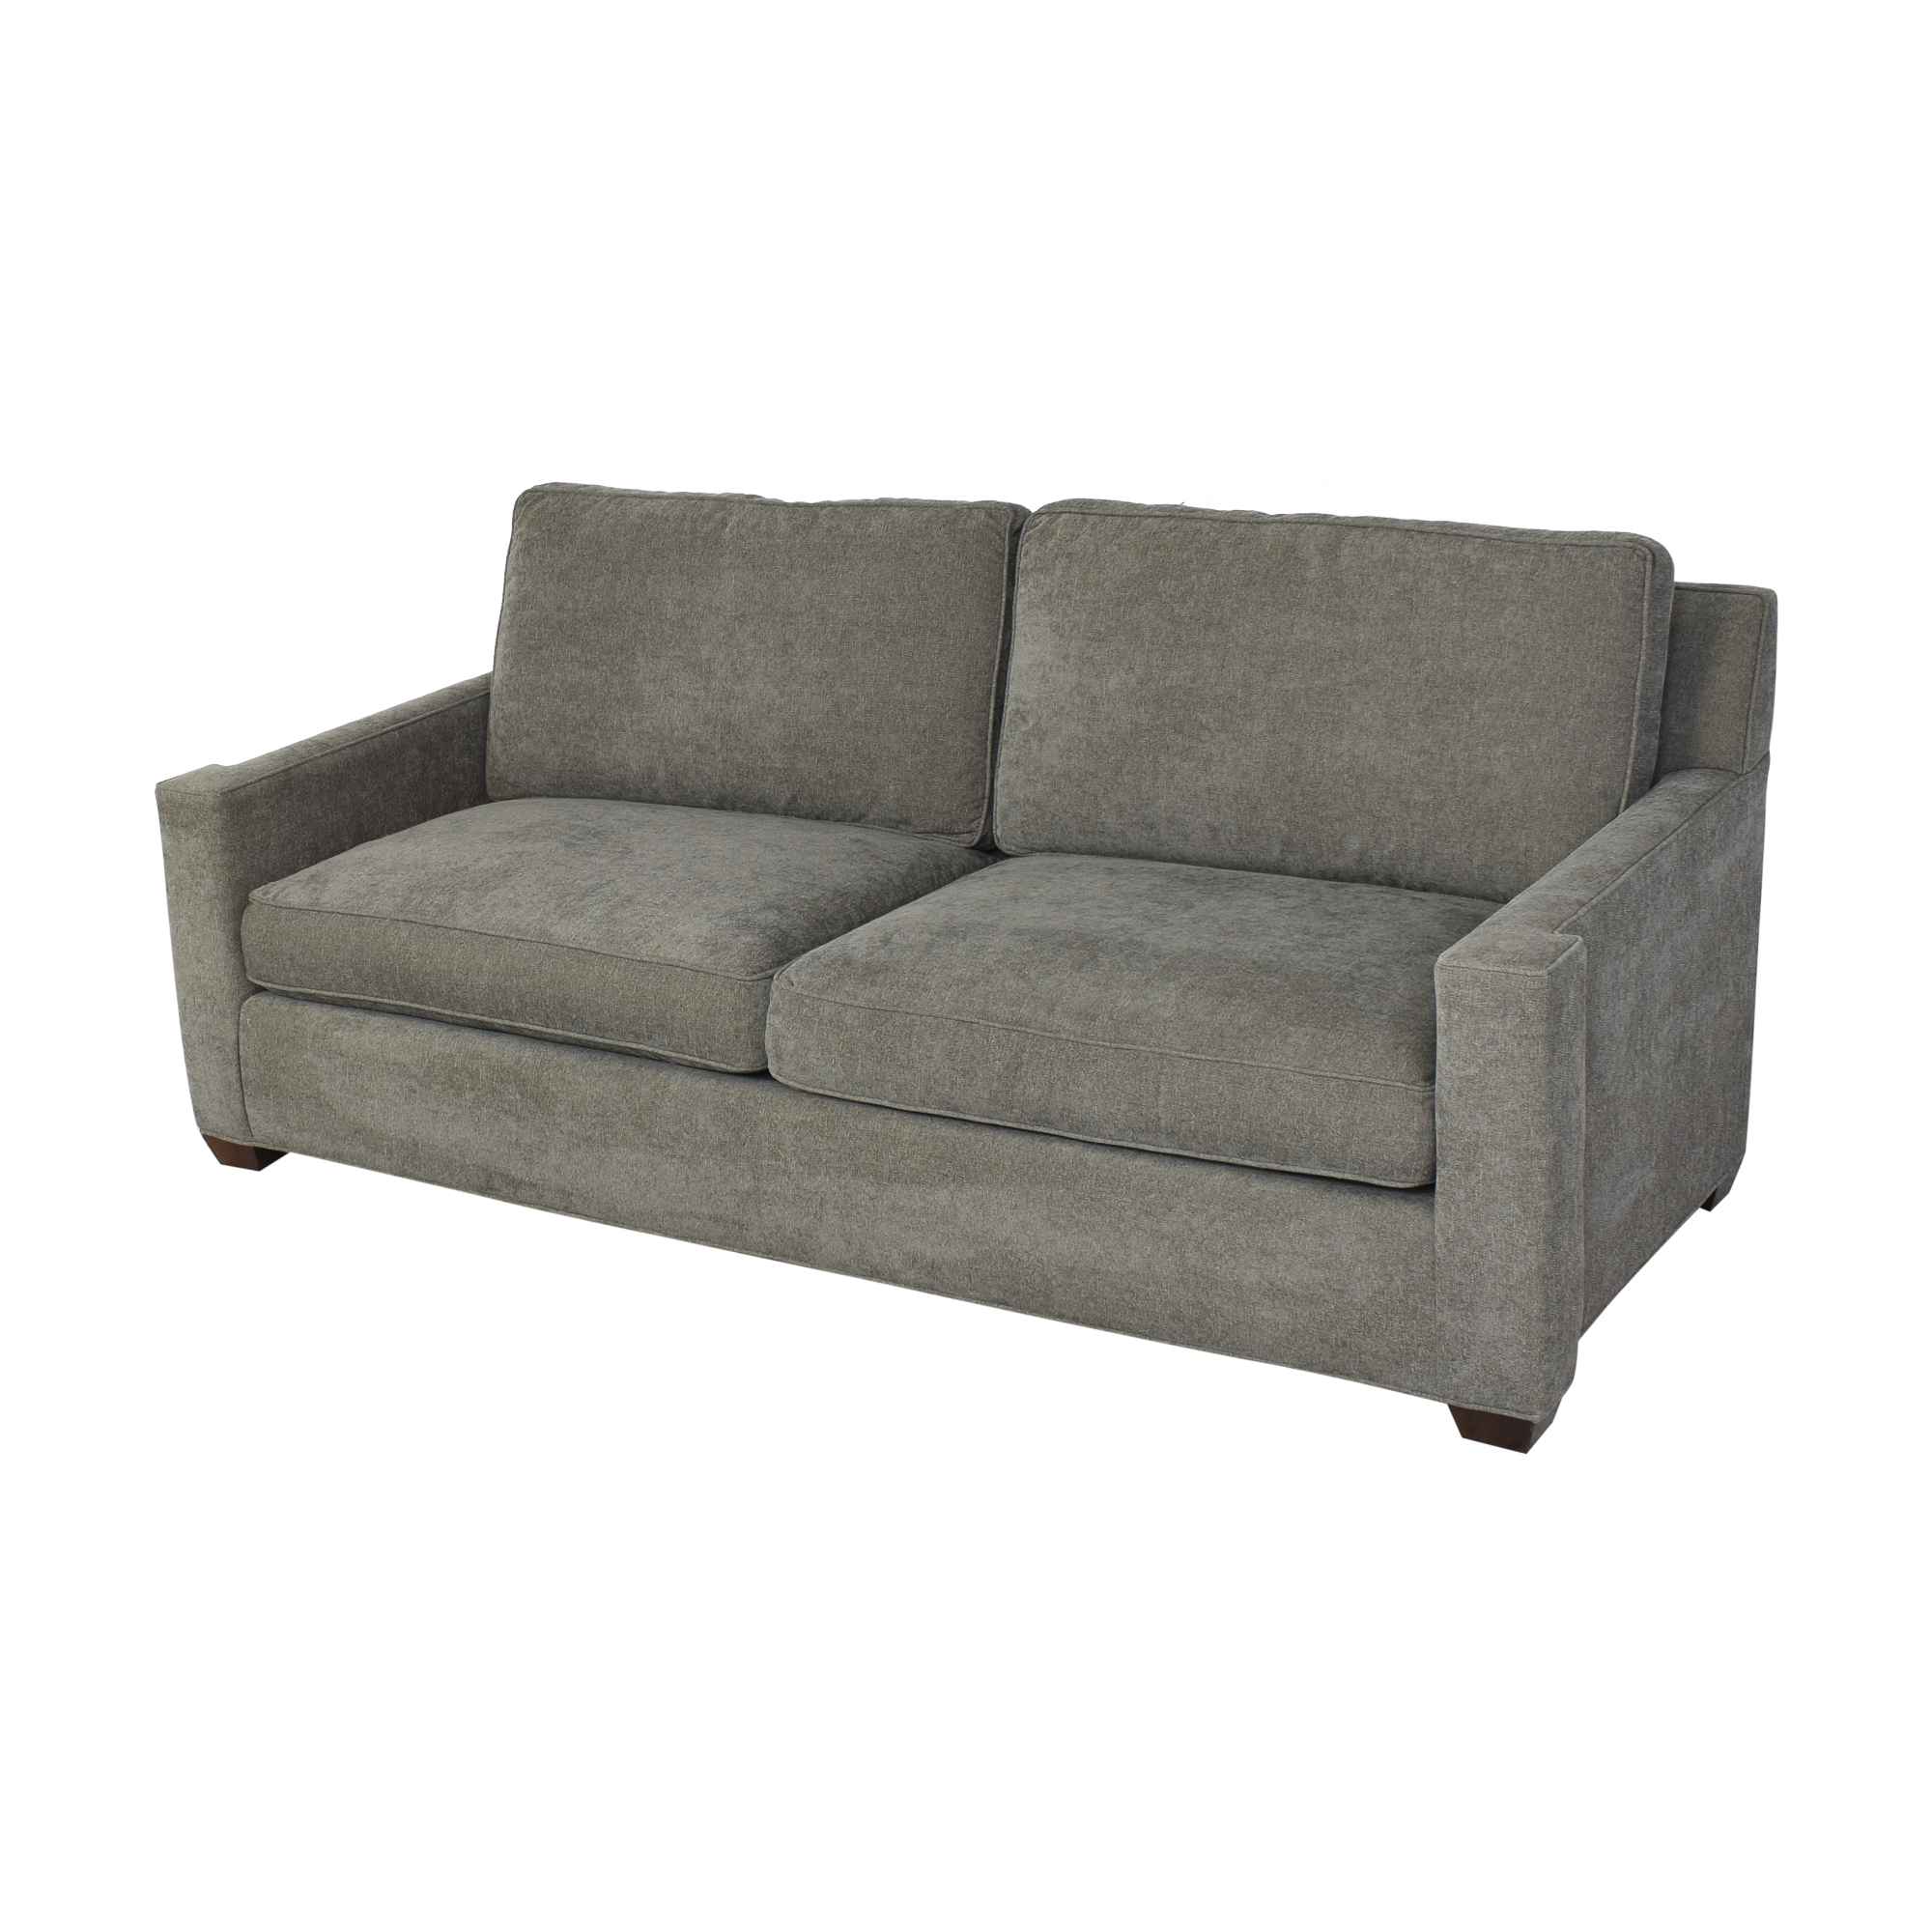 Century Furniture Century Furniture Colton Sofa grey